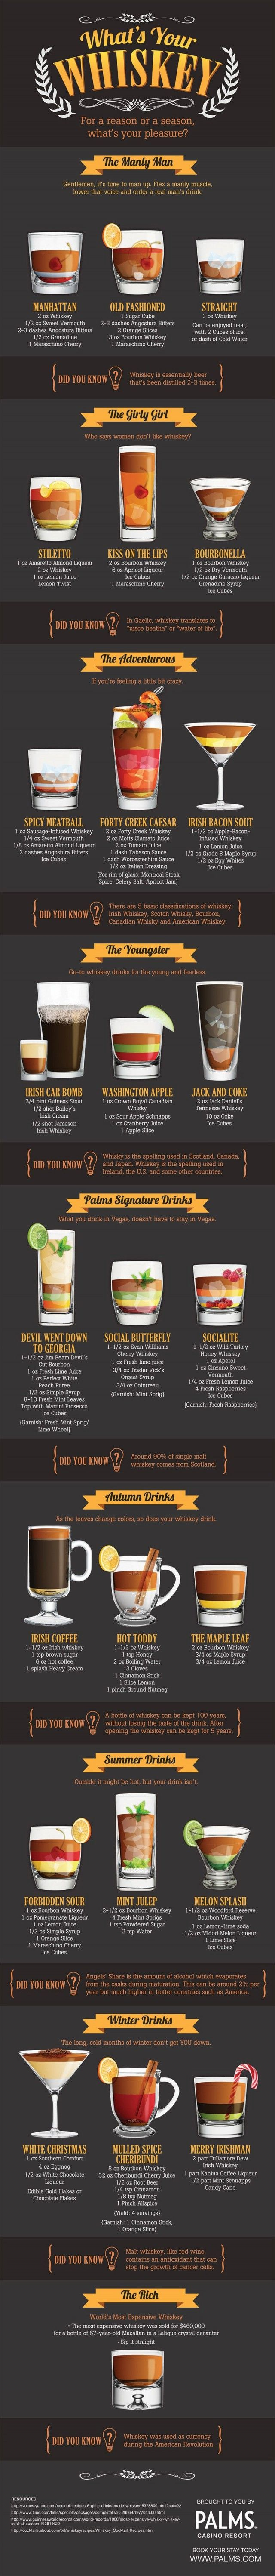 What's Your Whiskey via Daily Infographic Infographic.jpg.pagespeed.ic_.t8wrQo8gc9-1-640x5988